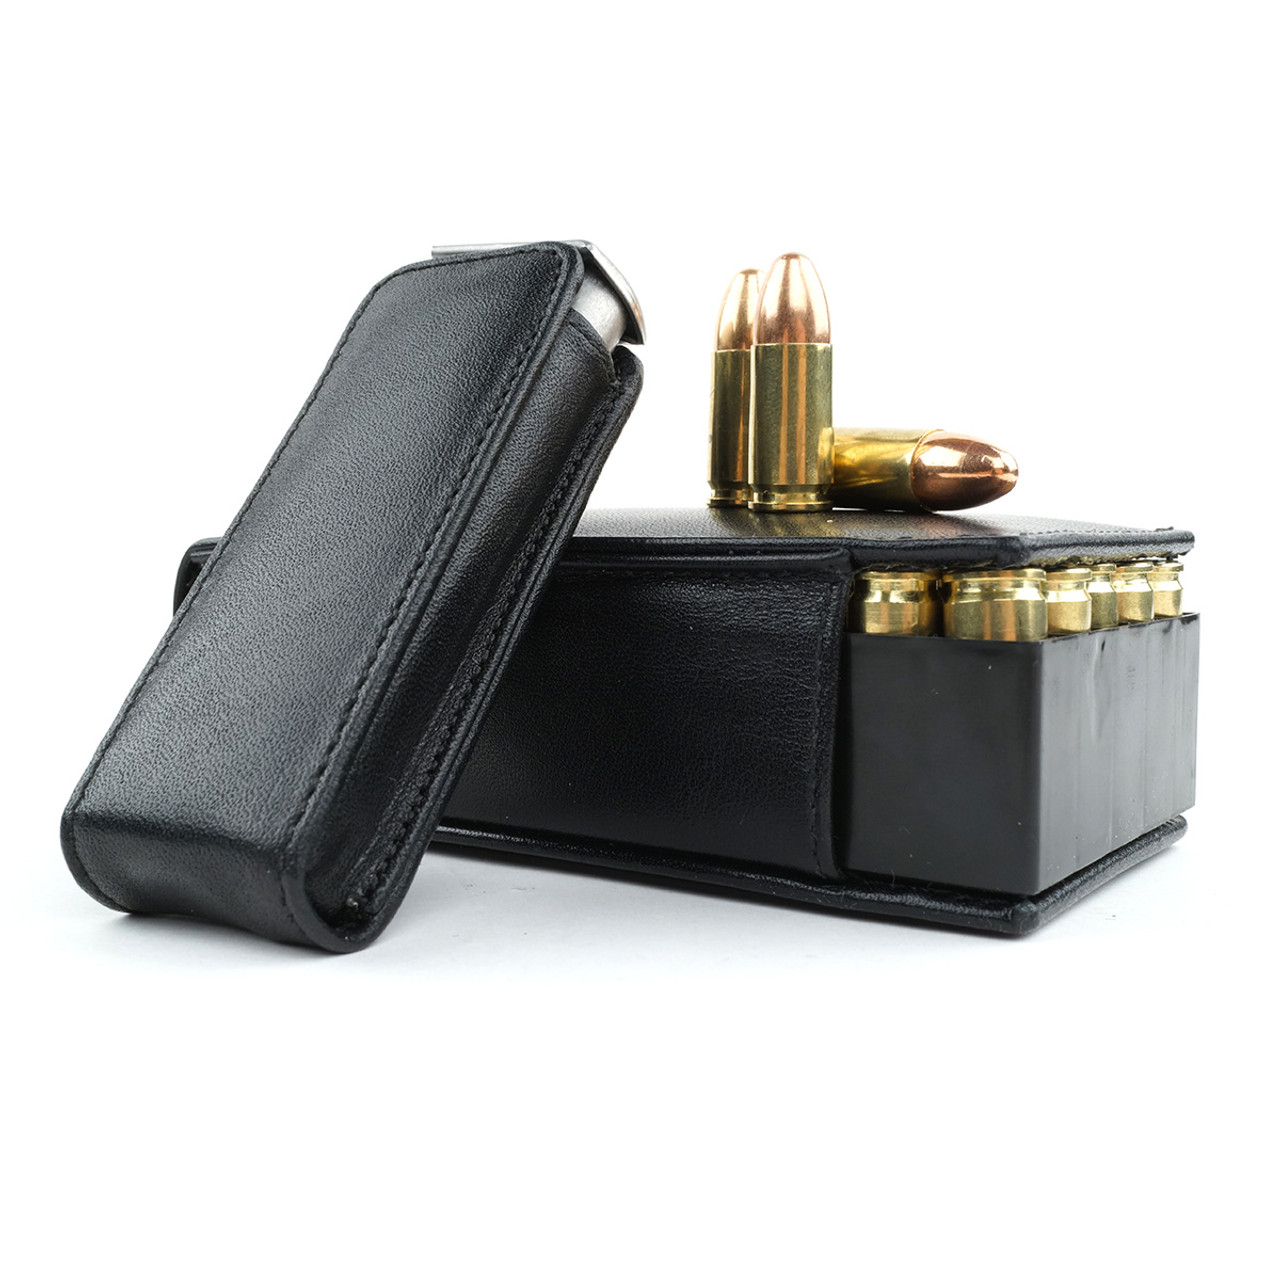 M&P Shield 40 Leather Bullet Brick